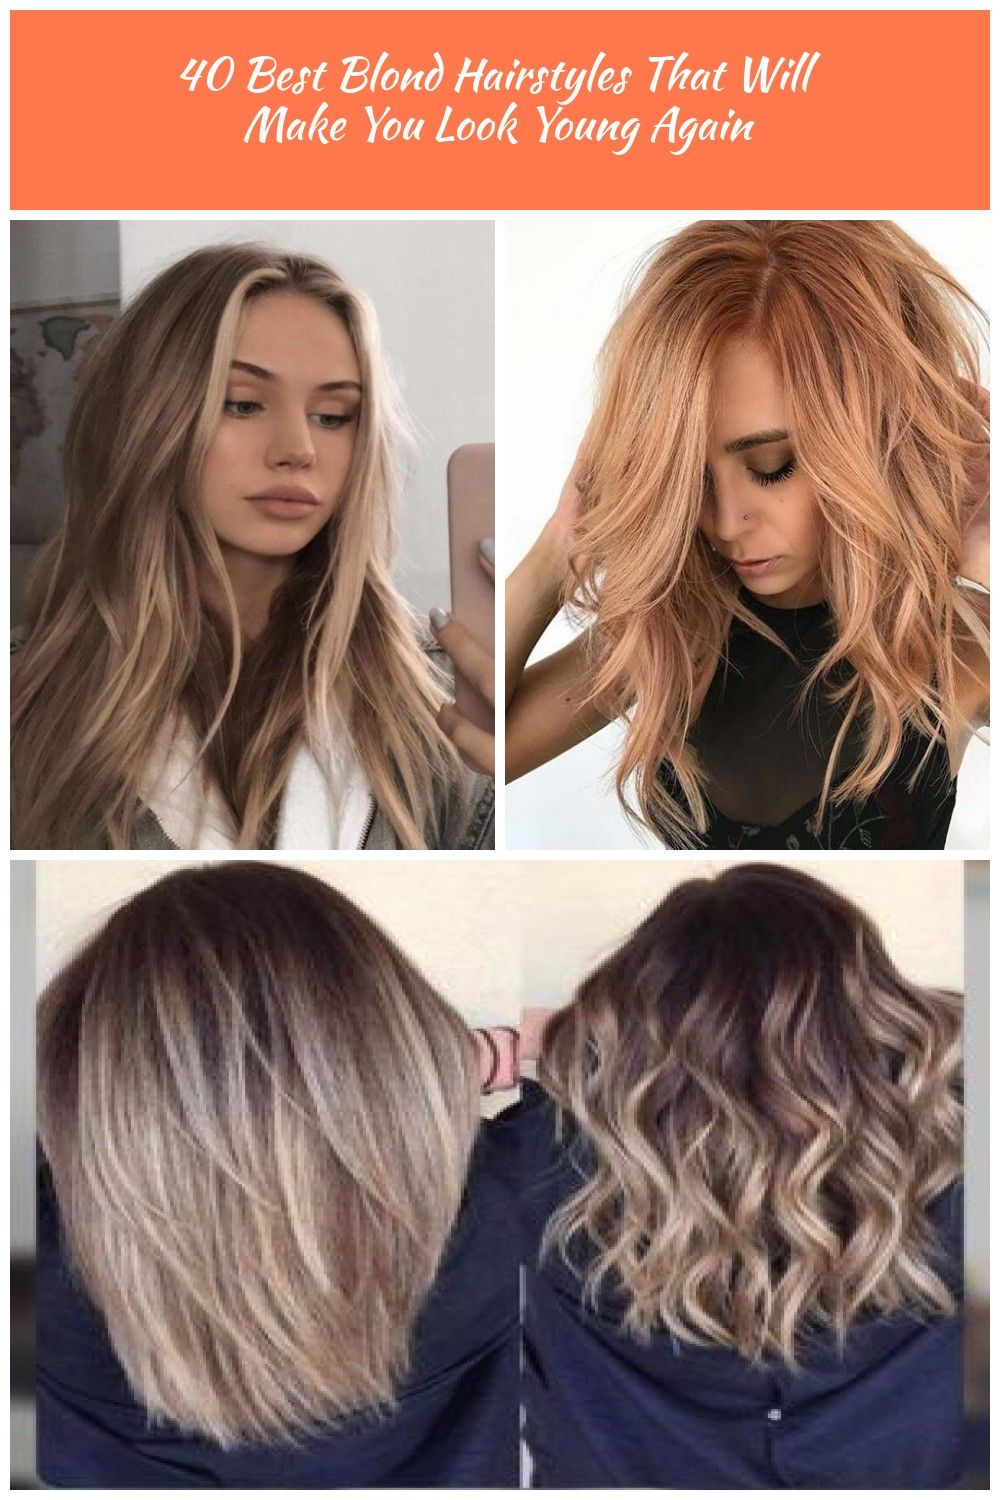 40 Amazing Blonde Hair Colors Hair Color Blonde 40 Best Blond Hairstyles That Will Make You Look Young Again Blonde Hair Color Hair Styles Long Hair Styles